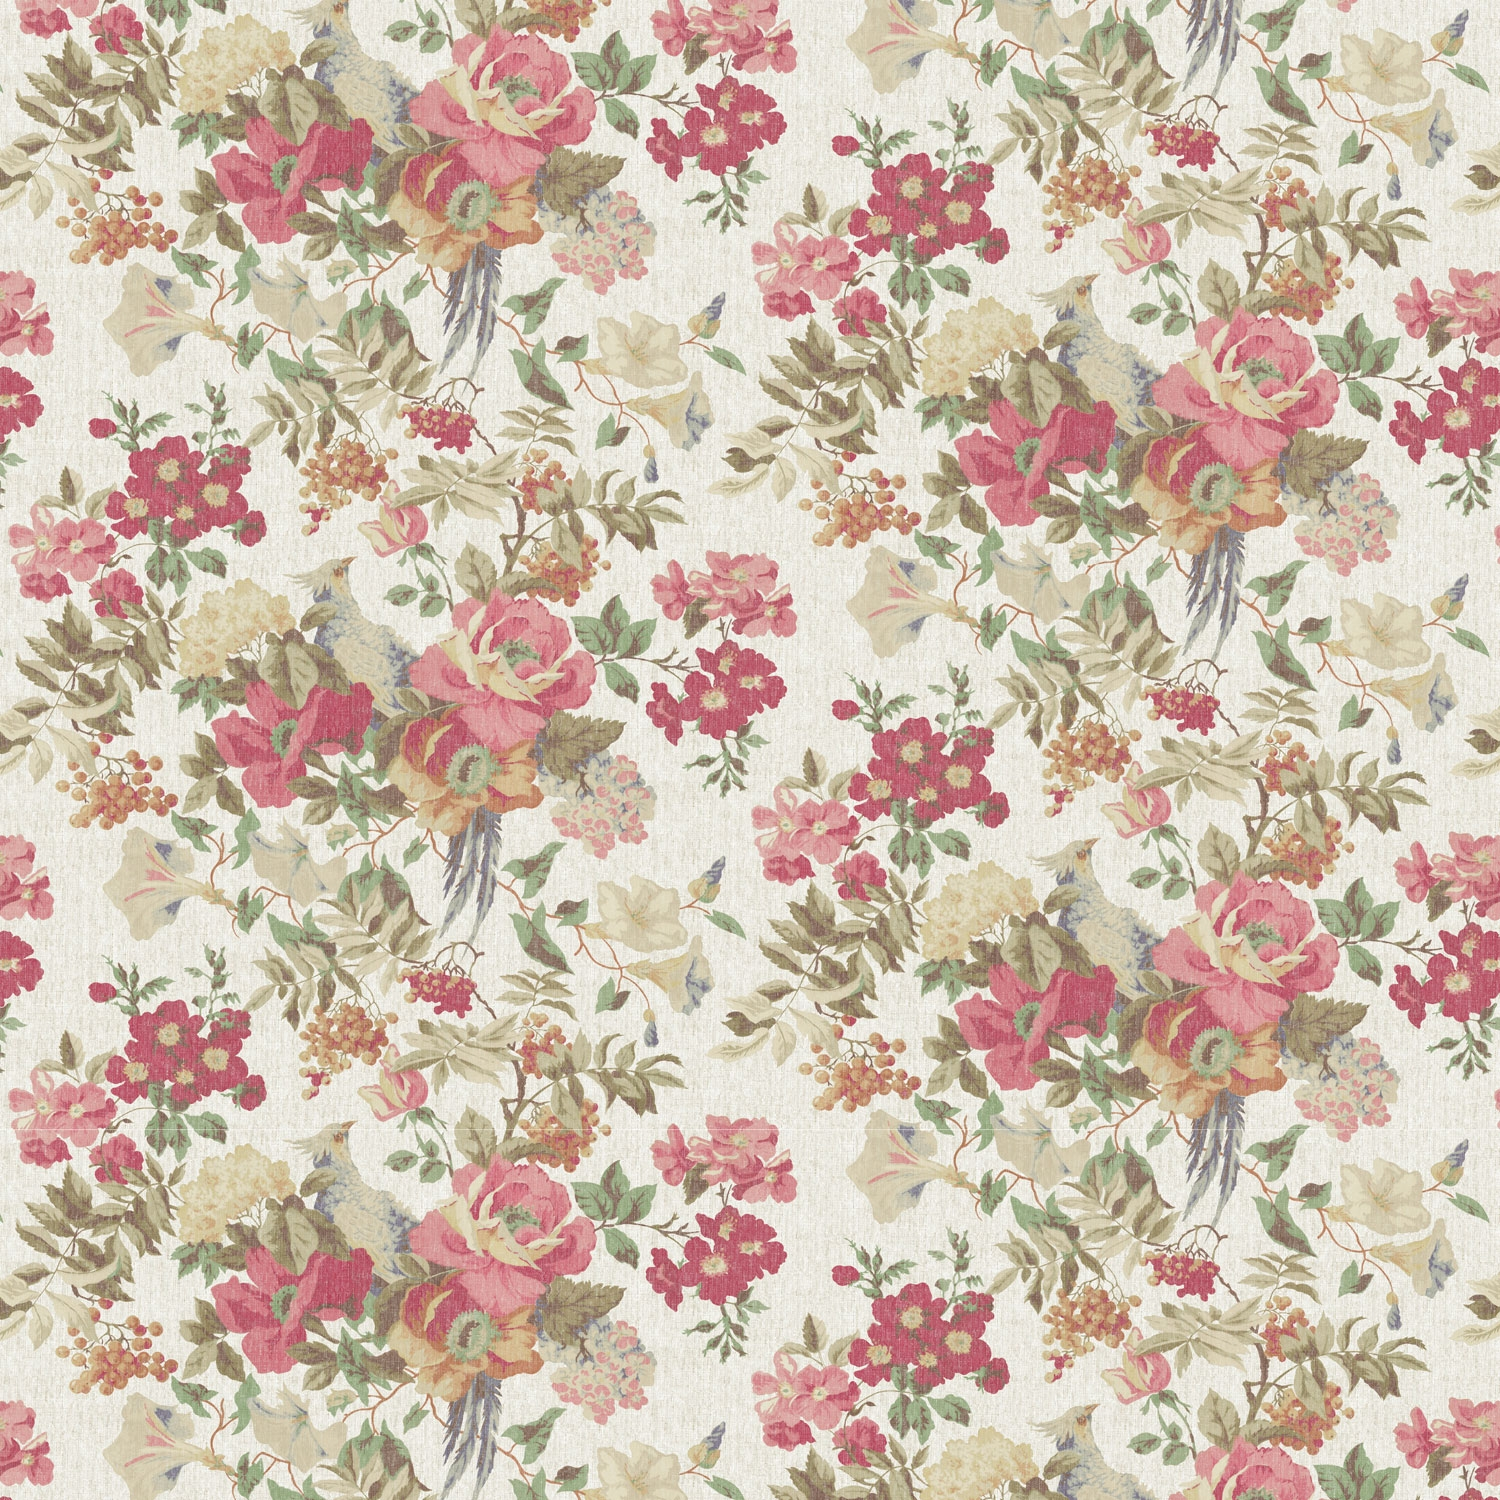 Vintage Floral Background Powerpoint Backgrounds For Free